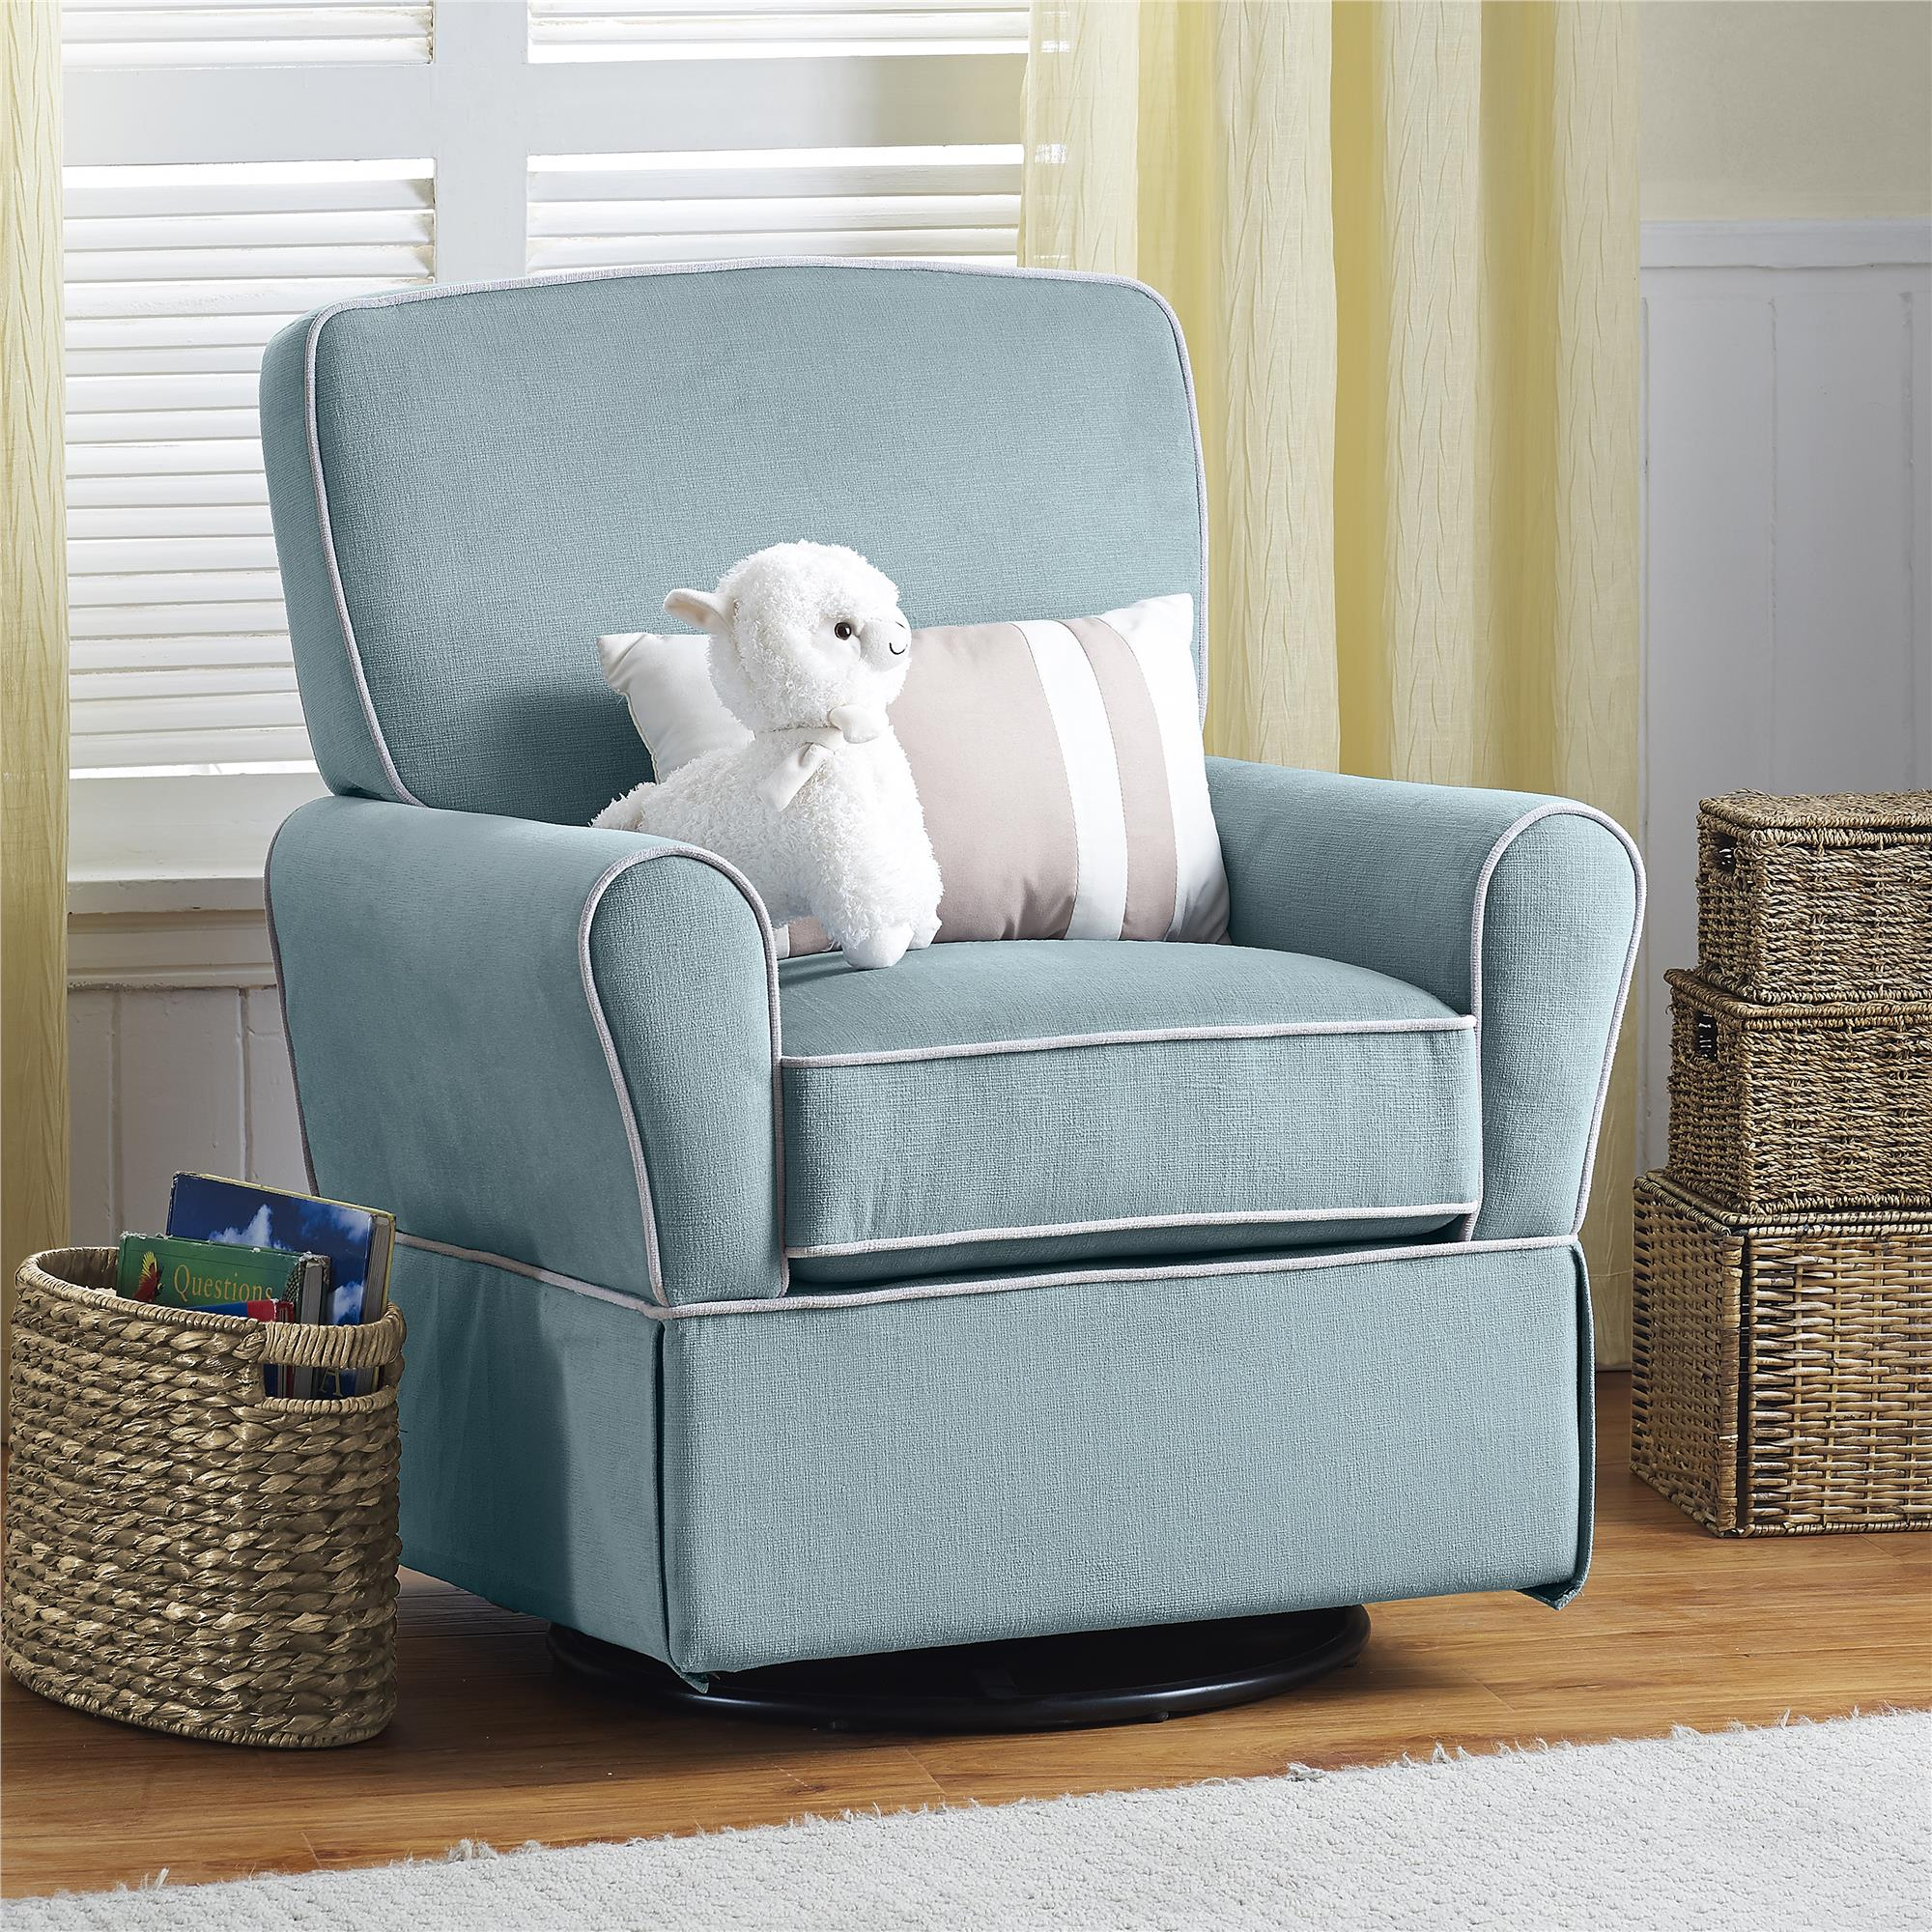 living room swivel glider chairs small layout with sectional dorel home furnishings milan aqua blue chair